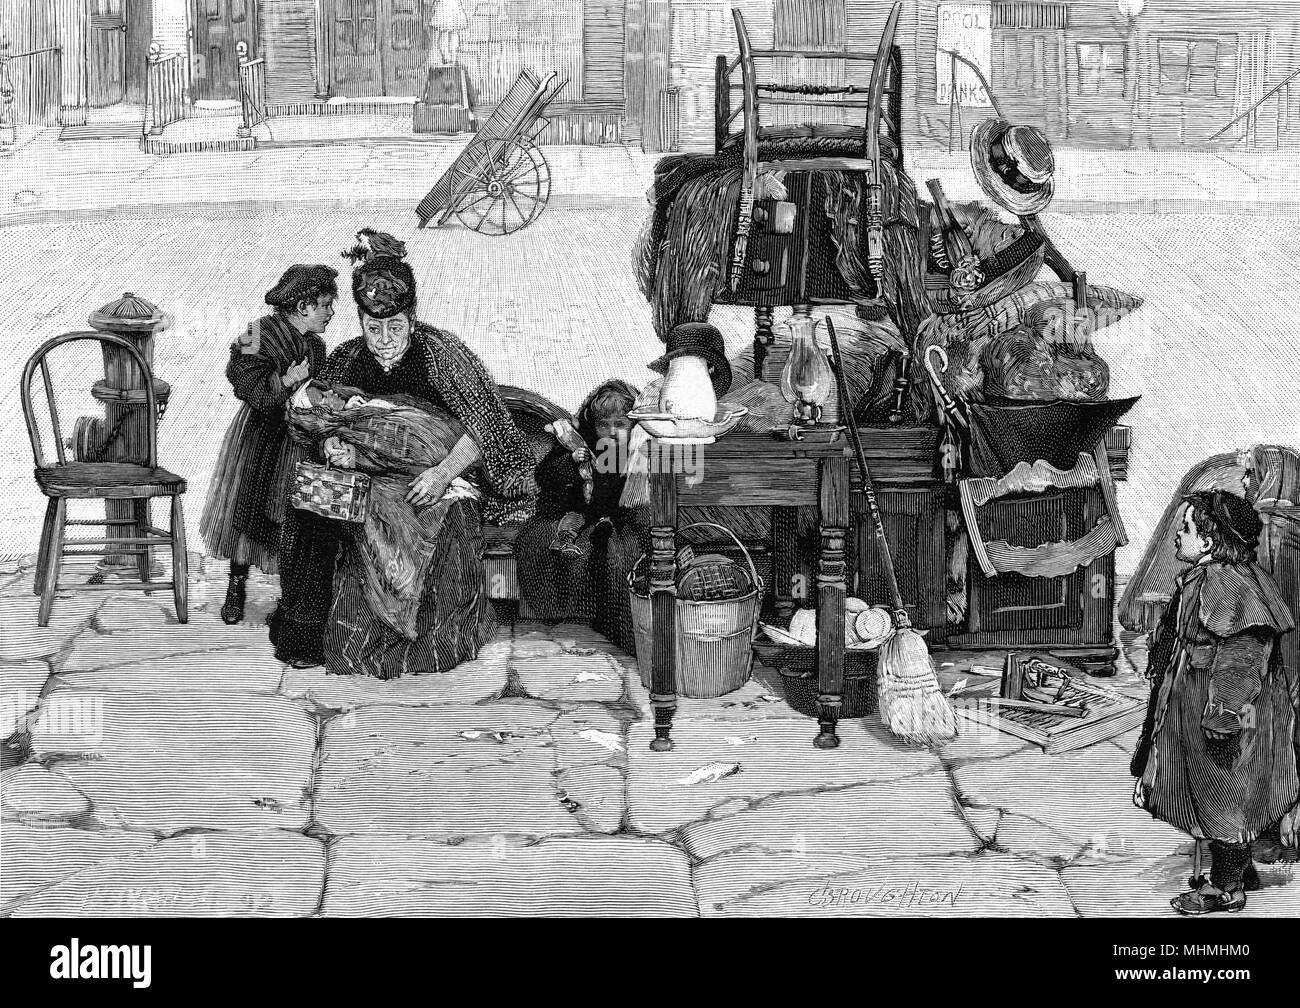 A mother and children find themselves on the pavement in New York, having been evicted from their home      Date: 1892 - Stock Image